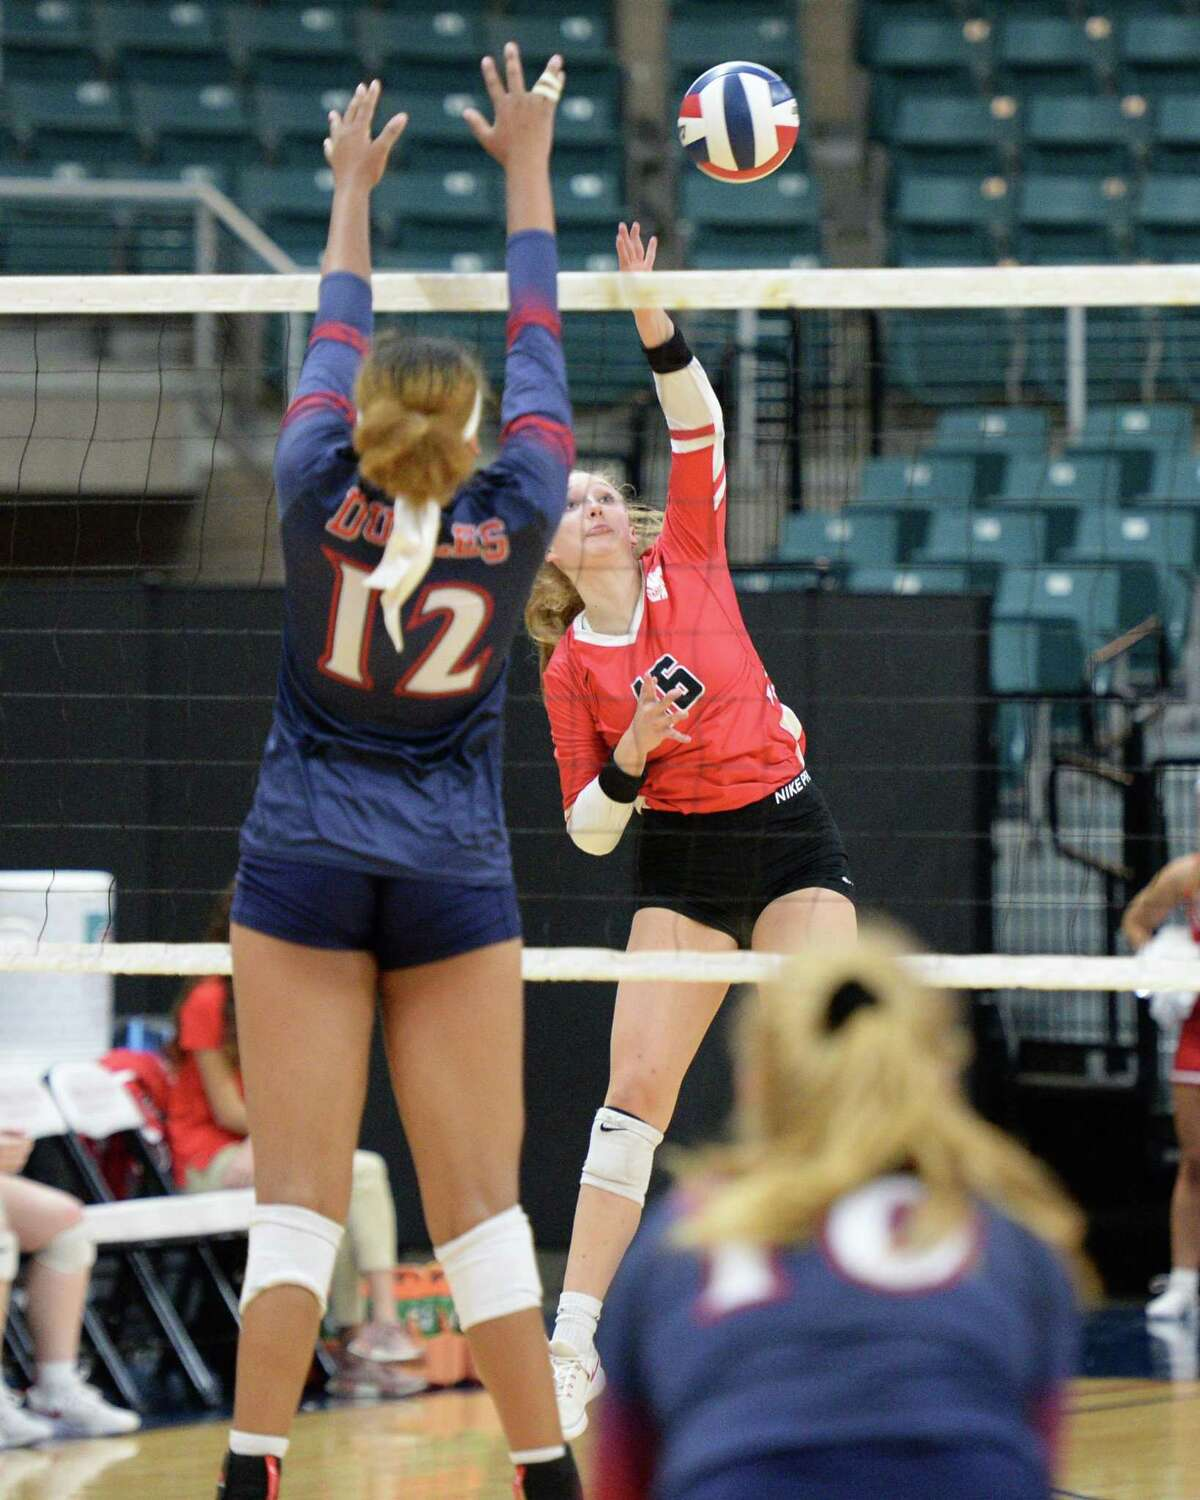 Maddie Waak (16) of Katy attempts a kill shot during the third set of a Class 6A Region III bi-district volleyball playoff match between the Dulles Vikings and the Katy Tigers on Monday, November 4, 2019 at the Leonard Merrell Center, Katy, TX.